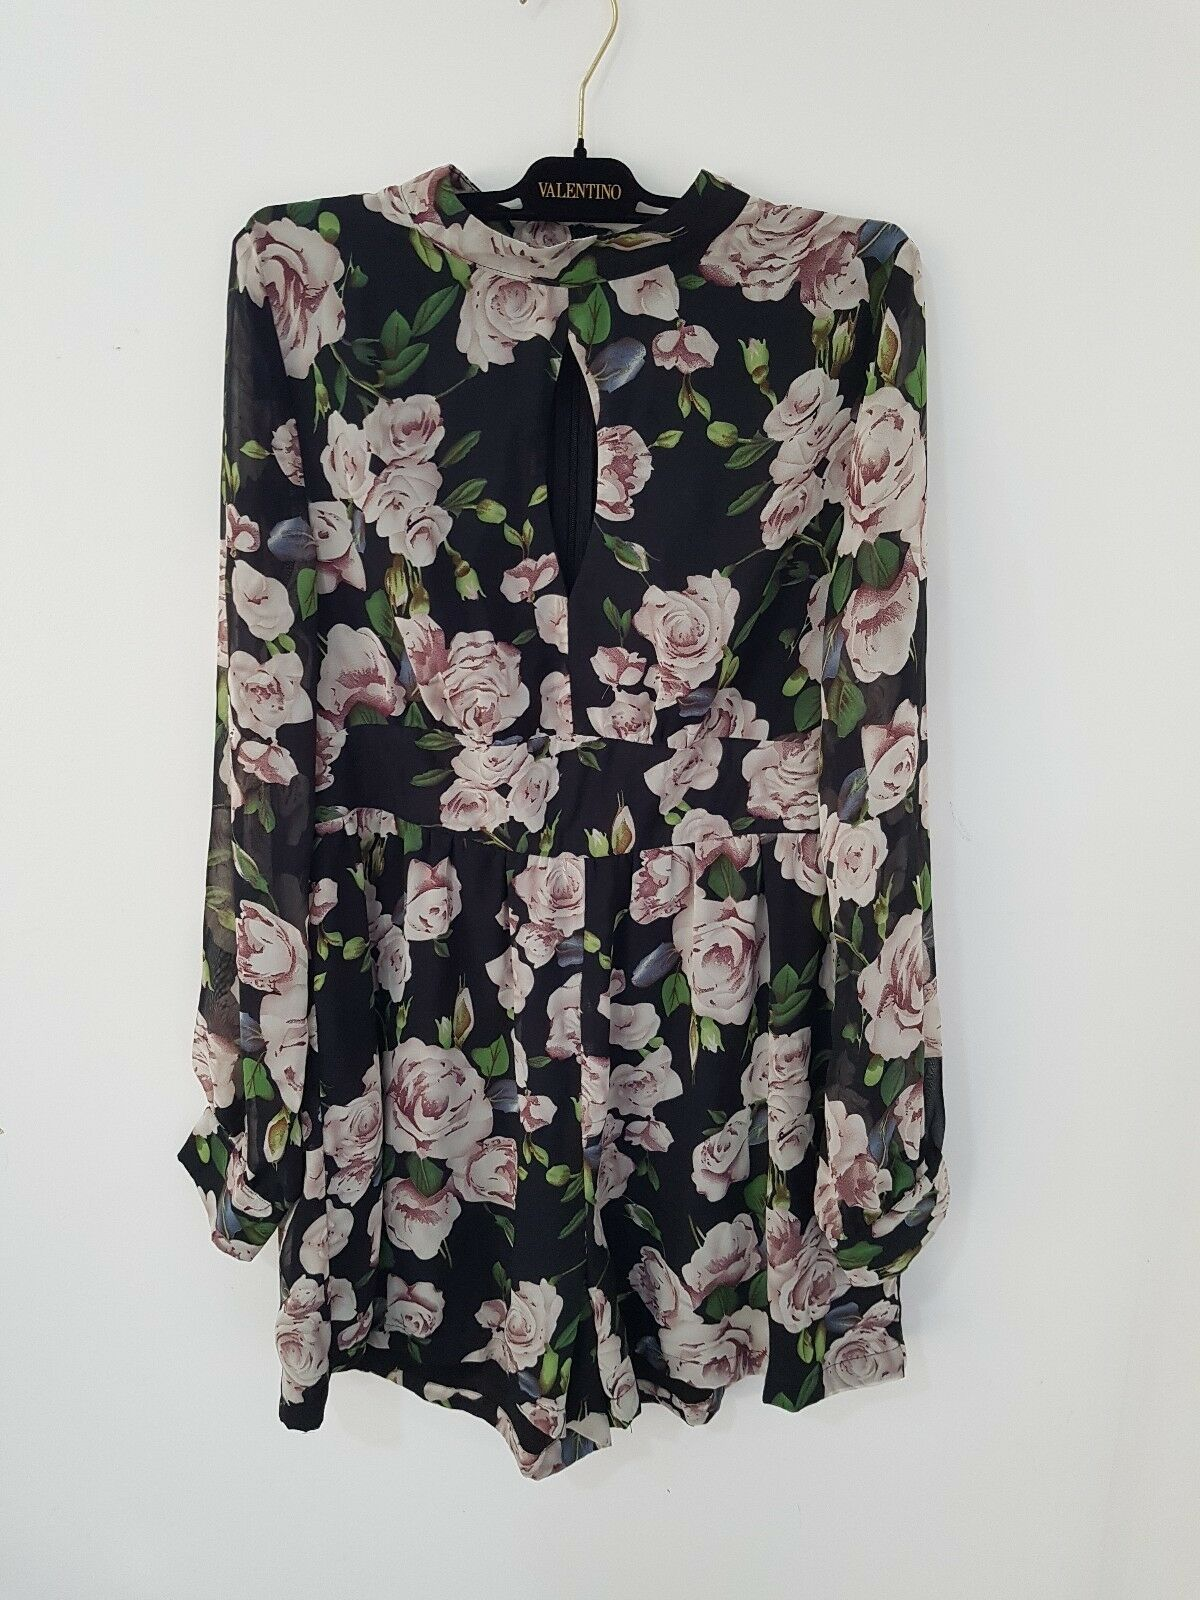 Asos Fashion Union stunning print floral long sleeve playsuit size